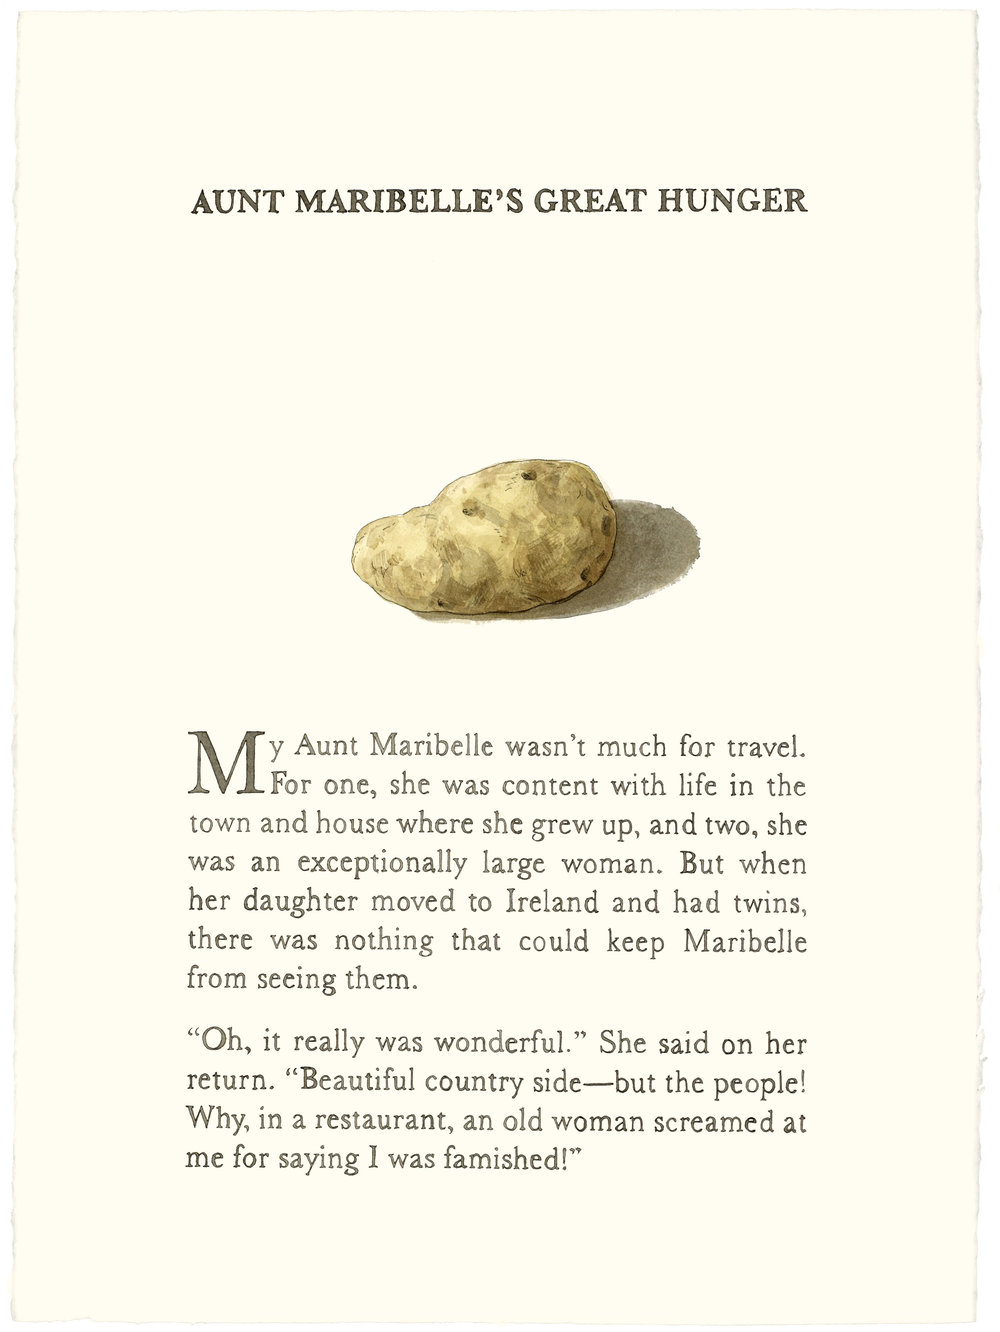 Aunt Maribelle's Great Hunger